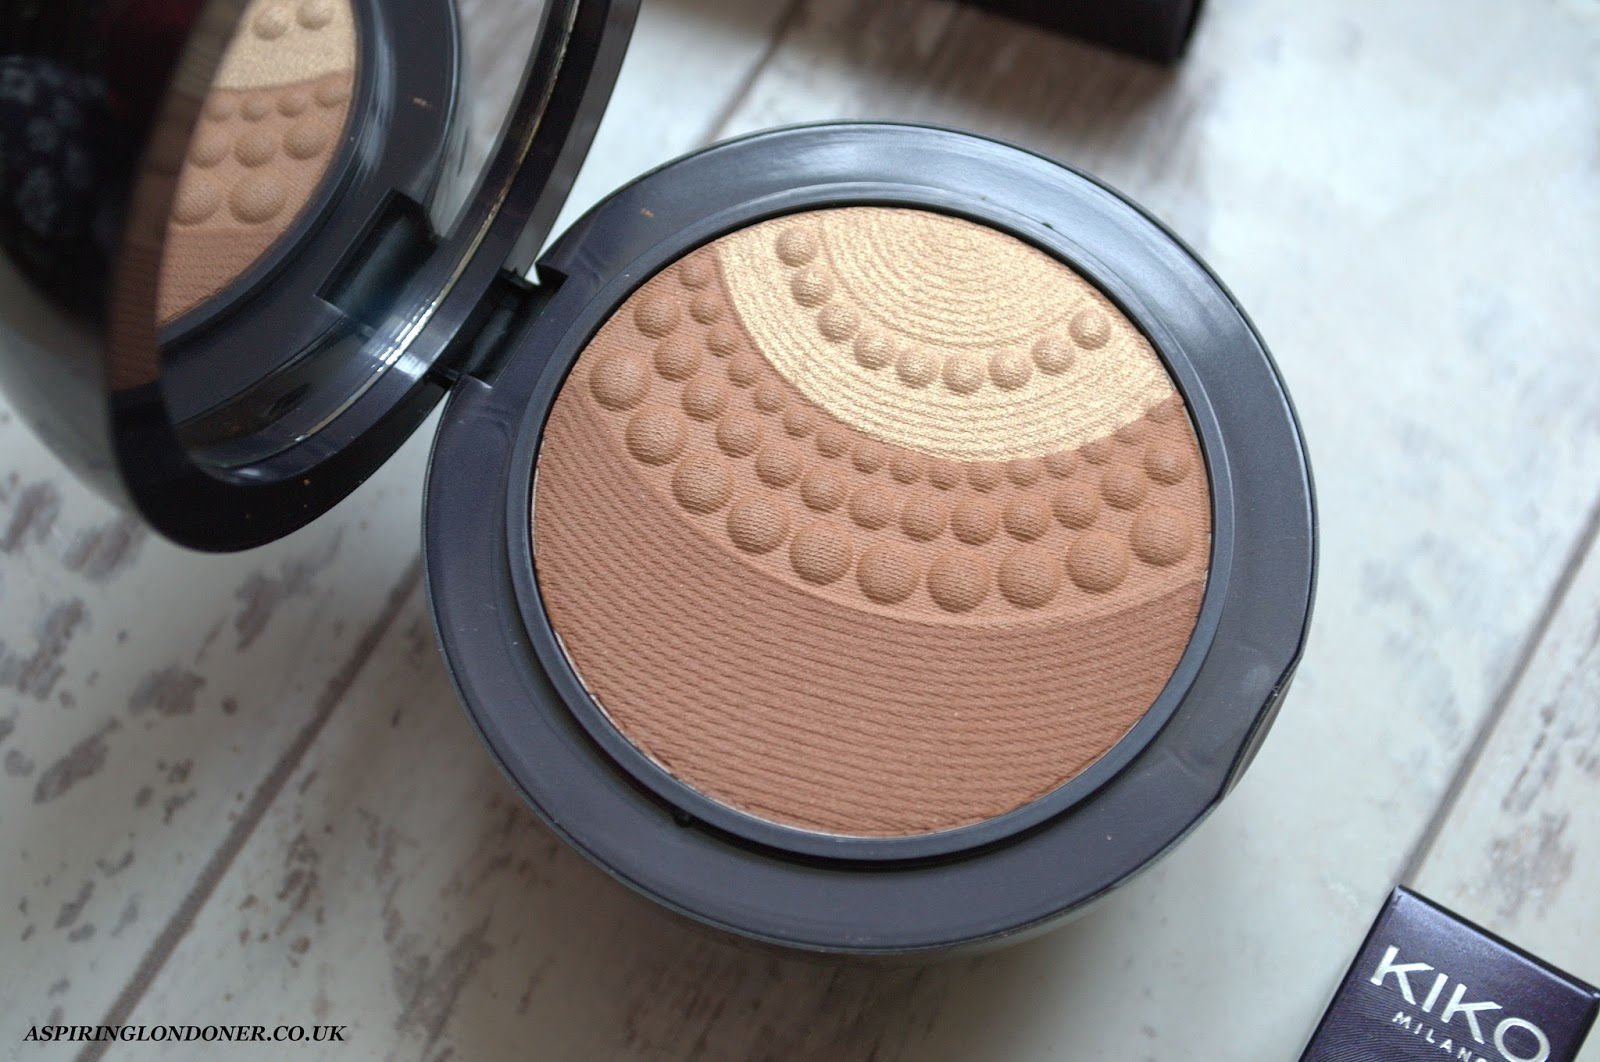 Kiko Midnight Siren Silk Pearl Illuminating Bronzer Irresistible Sienna Review Swatch - Aspiring Londoner